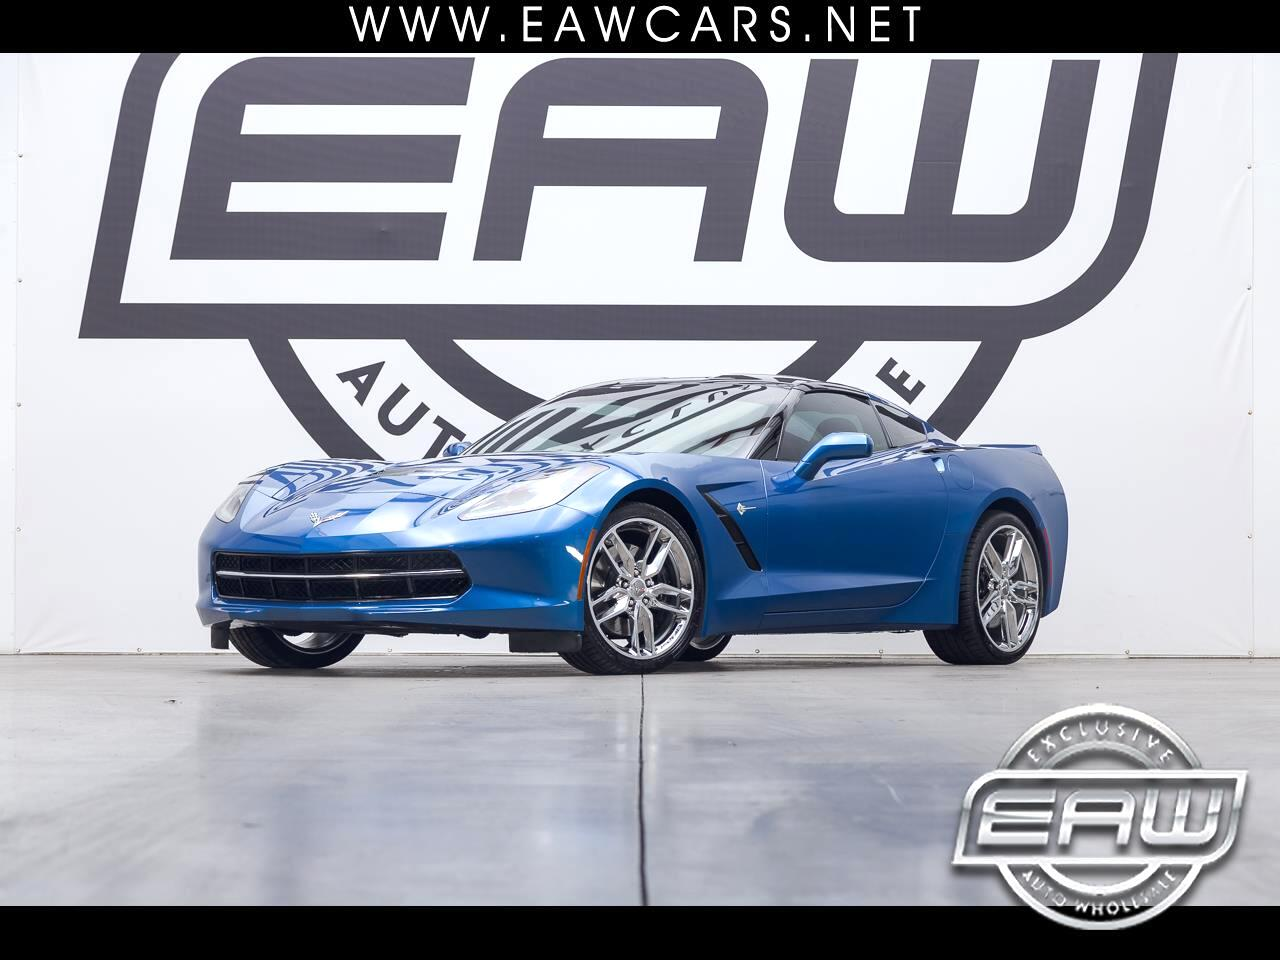 2015 Chevrolet Corvette Z51 2LT Coupe Automatic